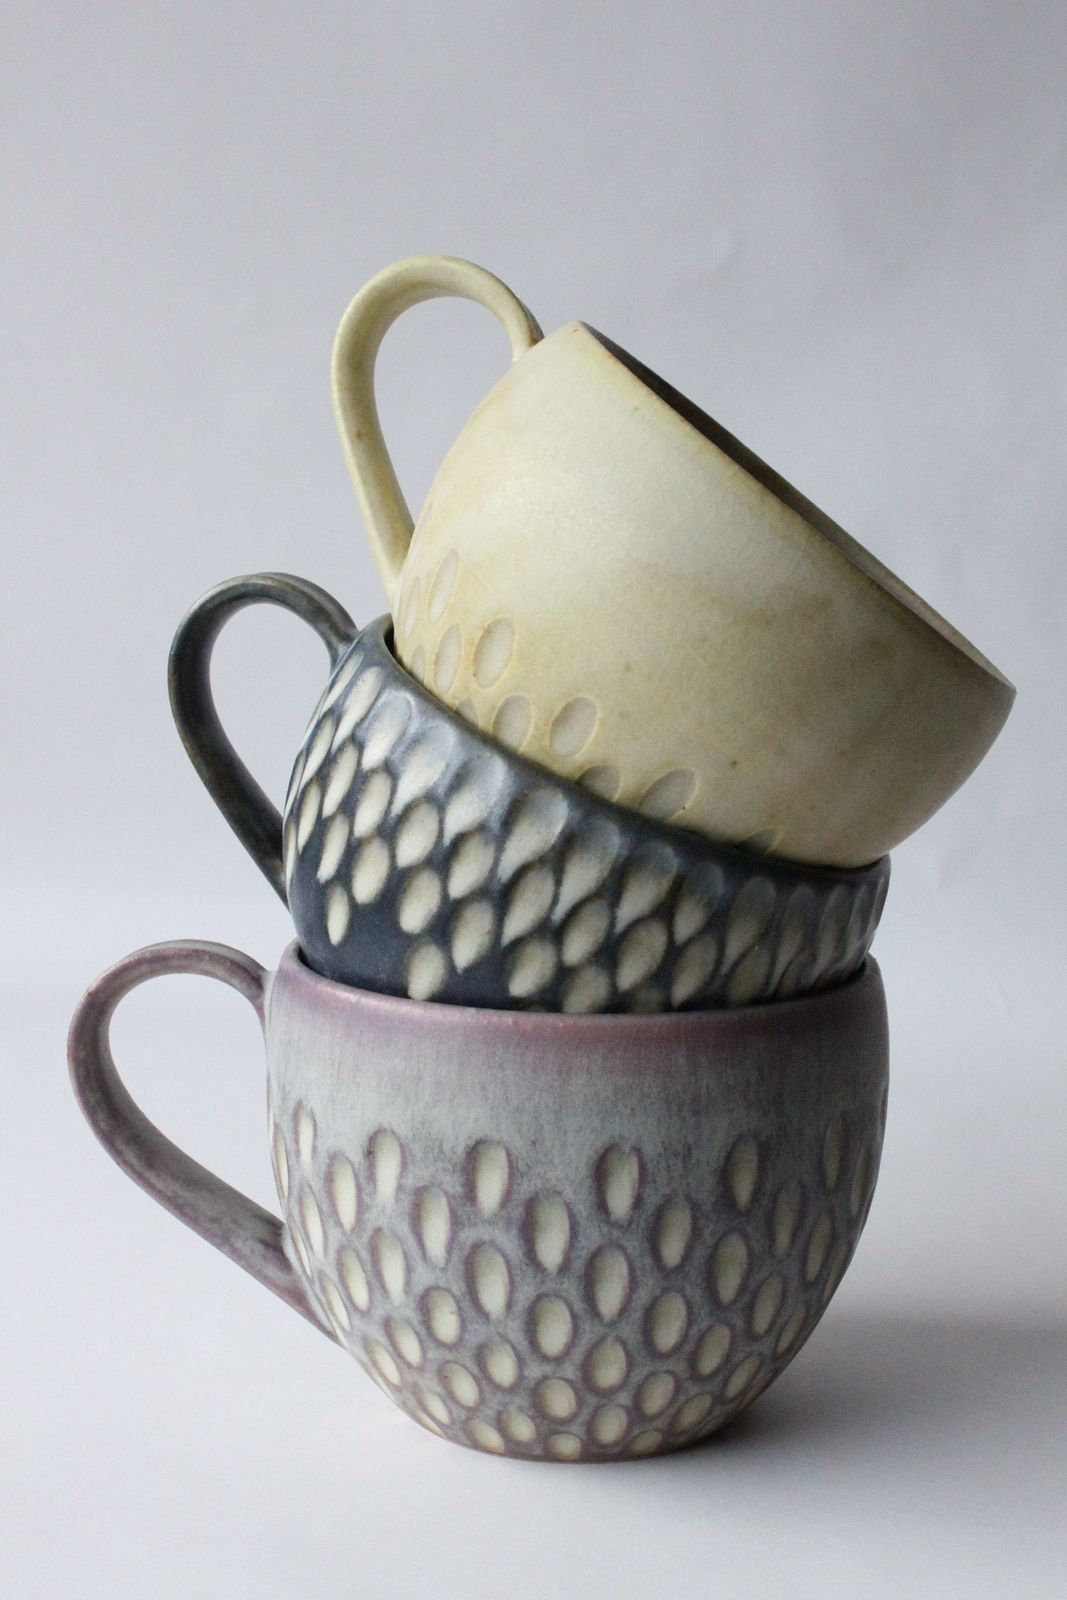 faceted mugs | Pottery, Clay and Pottery ideas